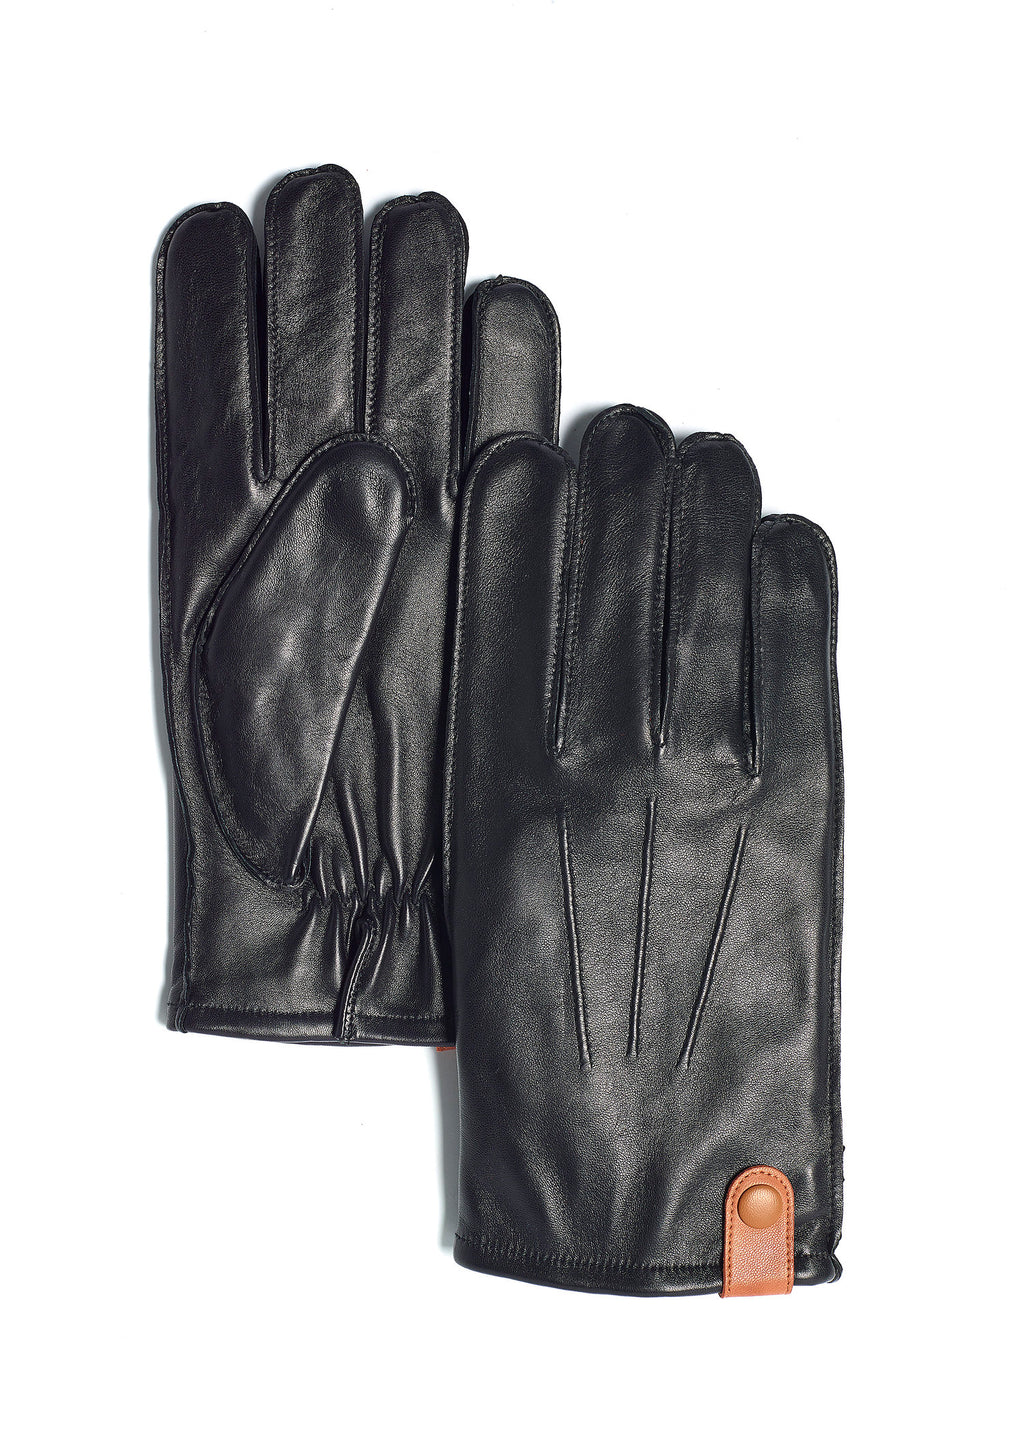 Men's Kidskin Gander Glove by Brume brm1961